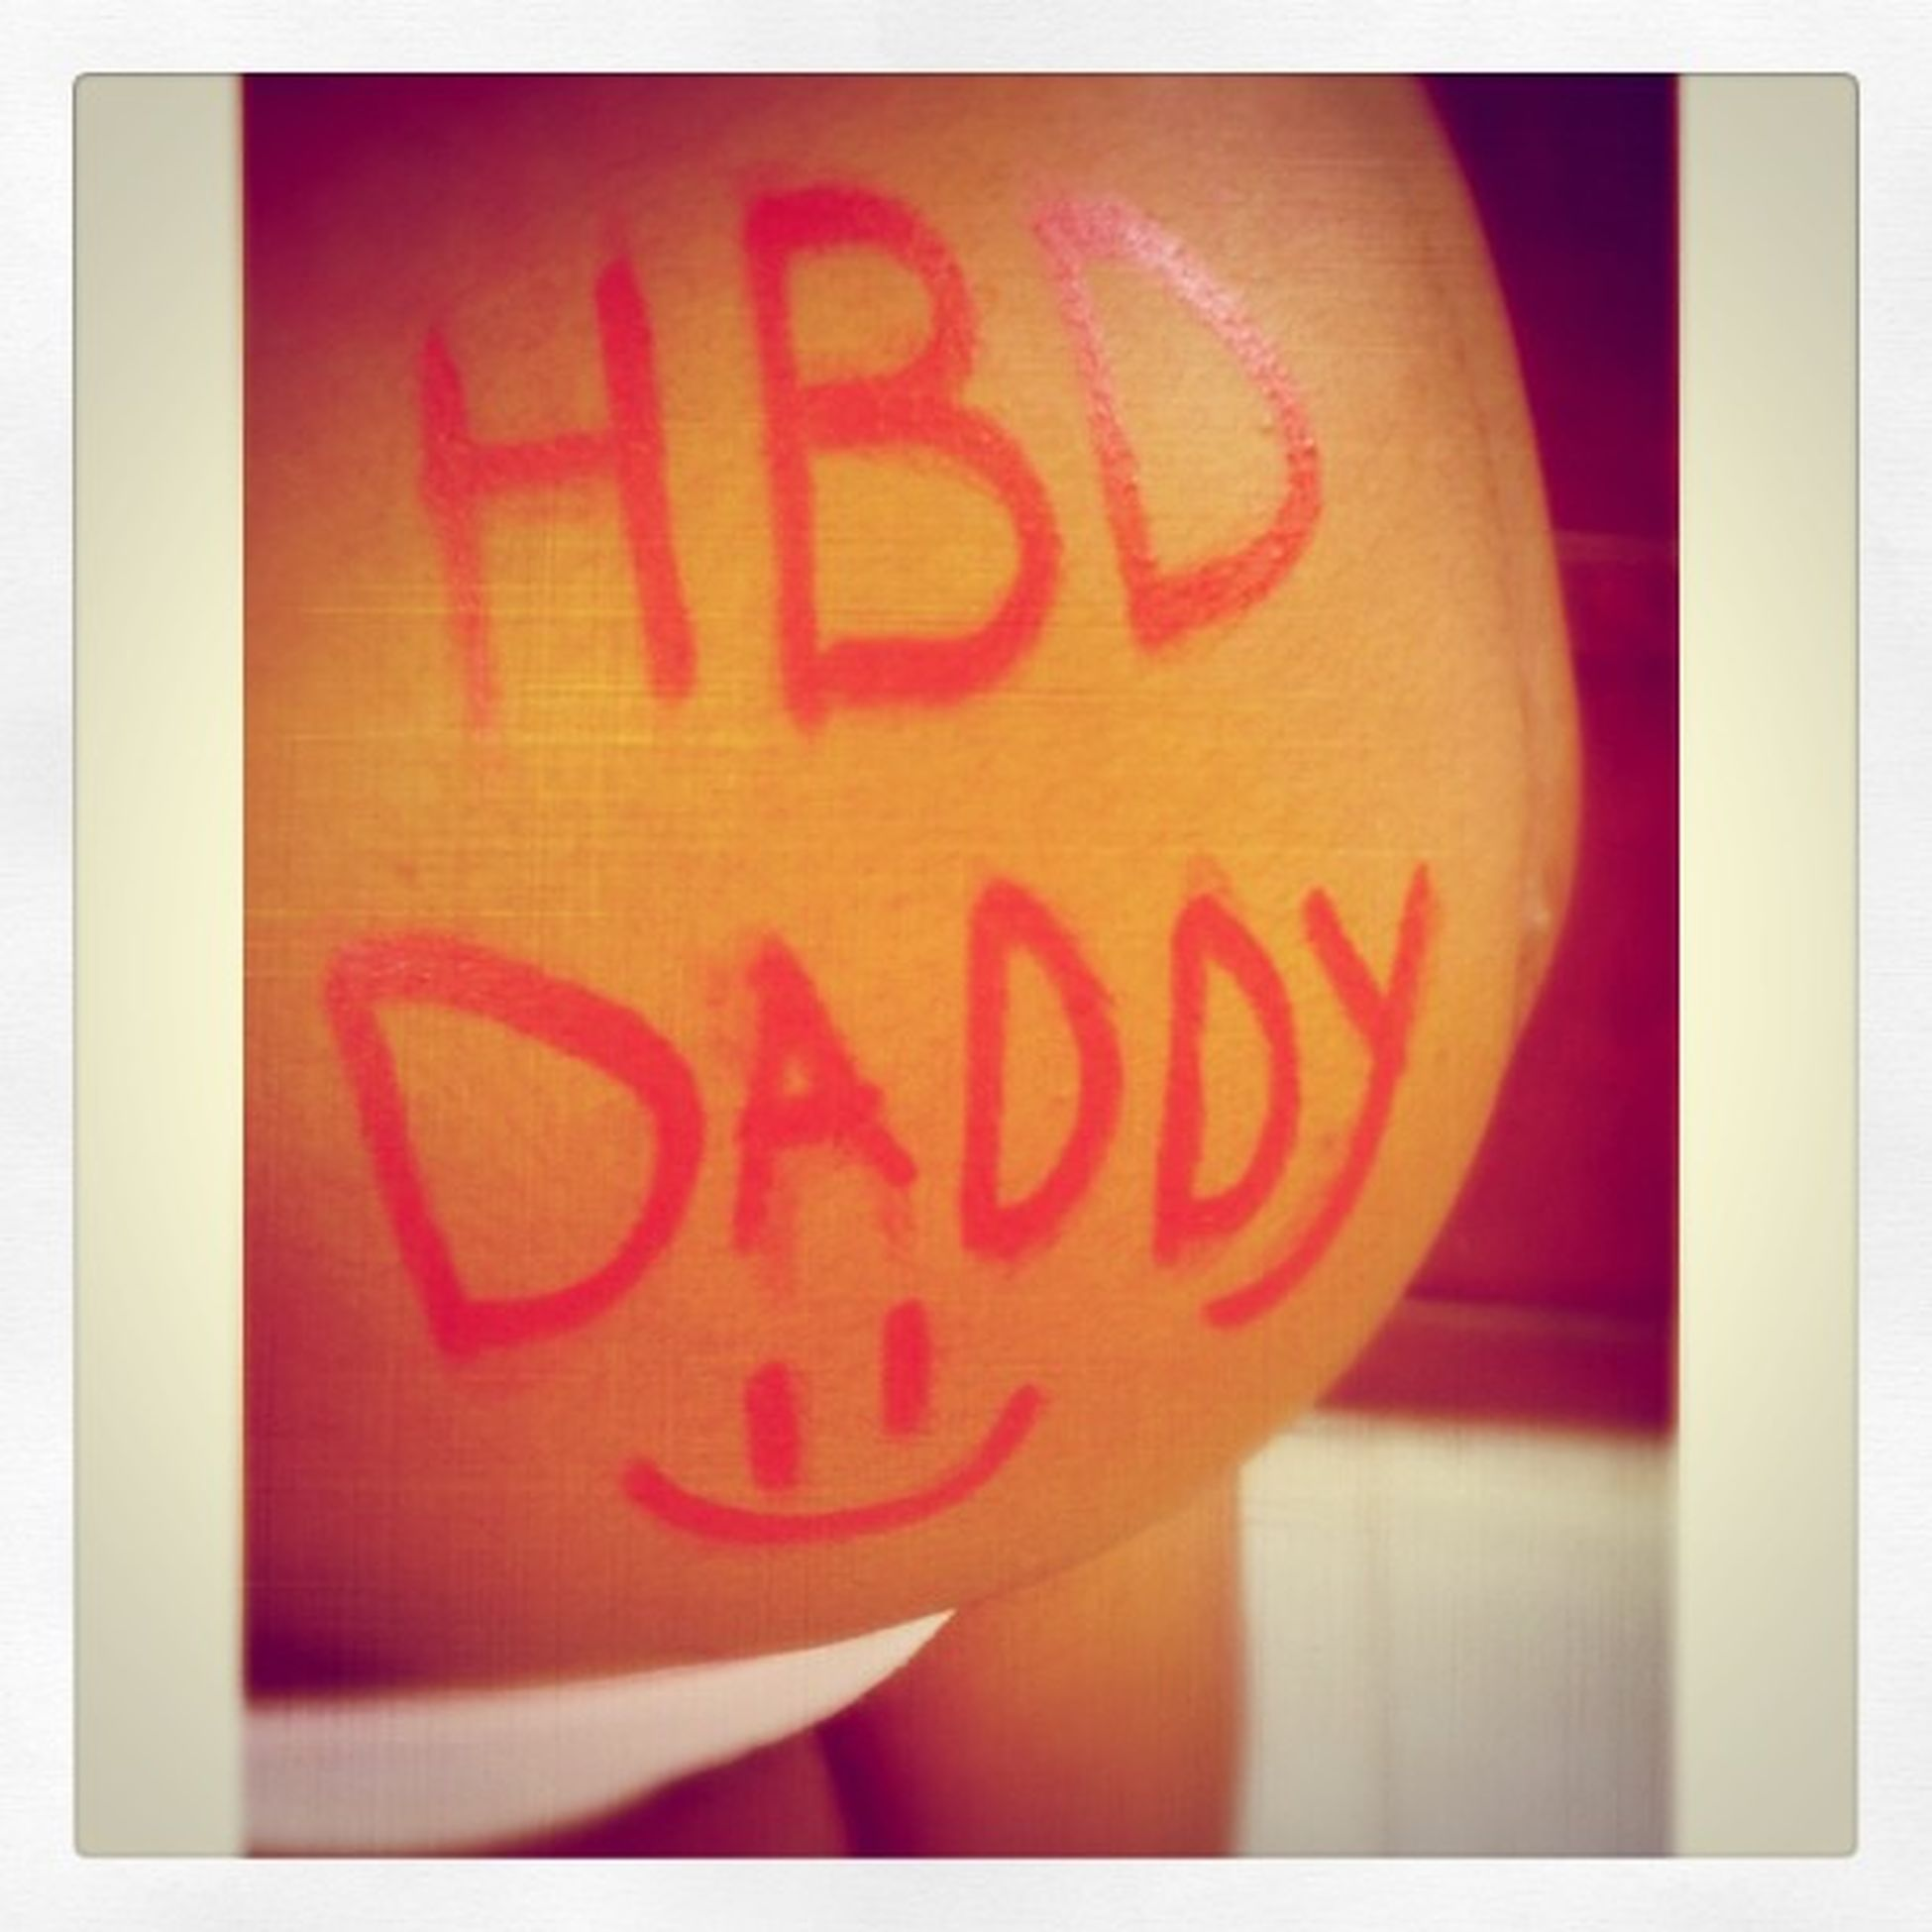 HBD TO DADDY.. This is the most amazing thing i have ever get!! Thanks nena i love you @lidyb05 .. Thats why i said you are so original and unique!!!! Bellyart Daddytobe Babyonboard Liah birthday iphonegraphy